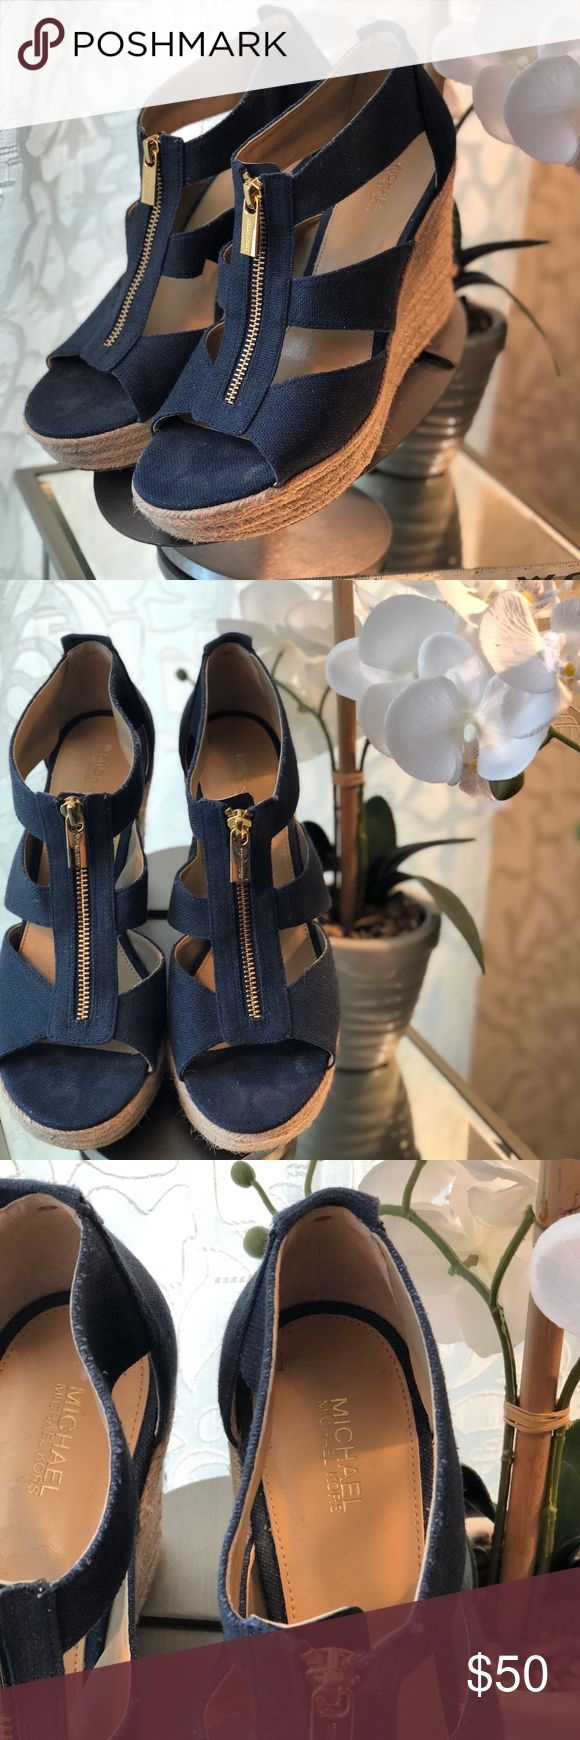 """ Micheal Kors Navy Wedge Sandals Good Condition!!! Worn a few times! Gorgeous Micheal Kors Navy Wedge Sandals w/ Gold Zipper Shoe Color: Navy and Tan Heel height - 4"""" Size - 9 M(US) MICHAEL Michael Kors Shoes Wedges"""